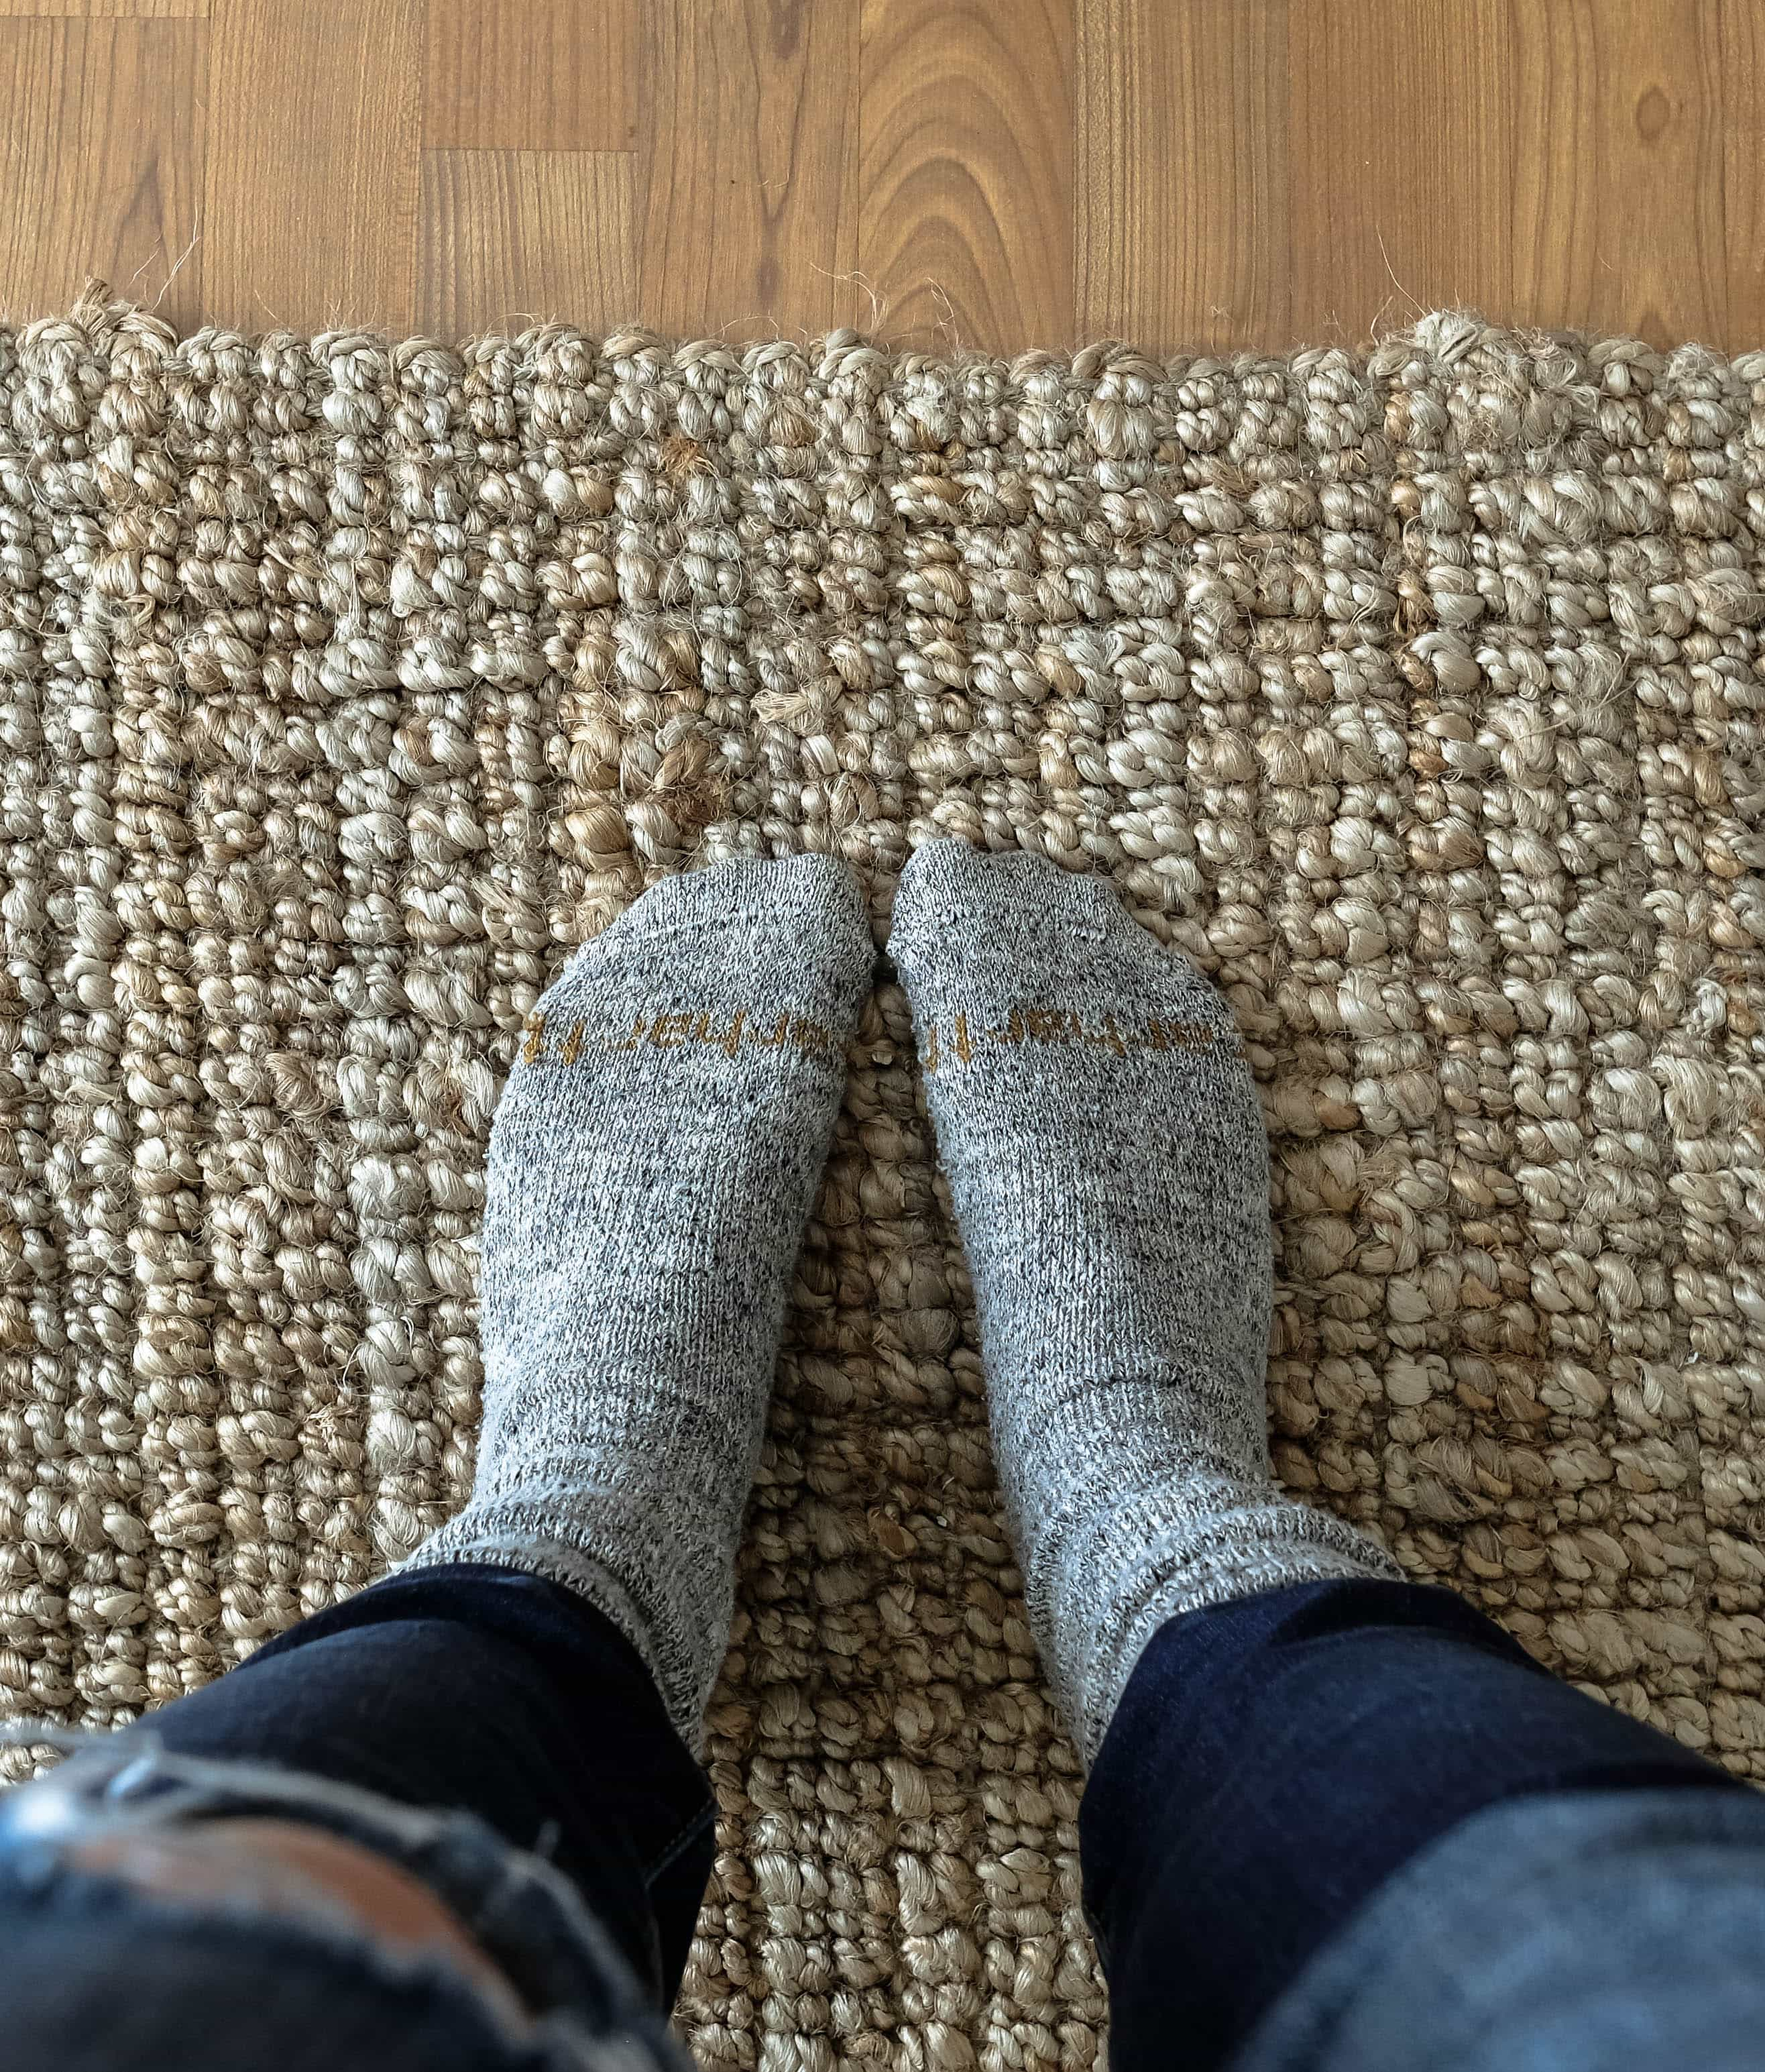 Close up of feet wearing wool socks standing on a jute rug